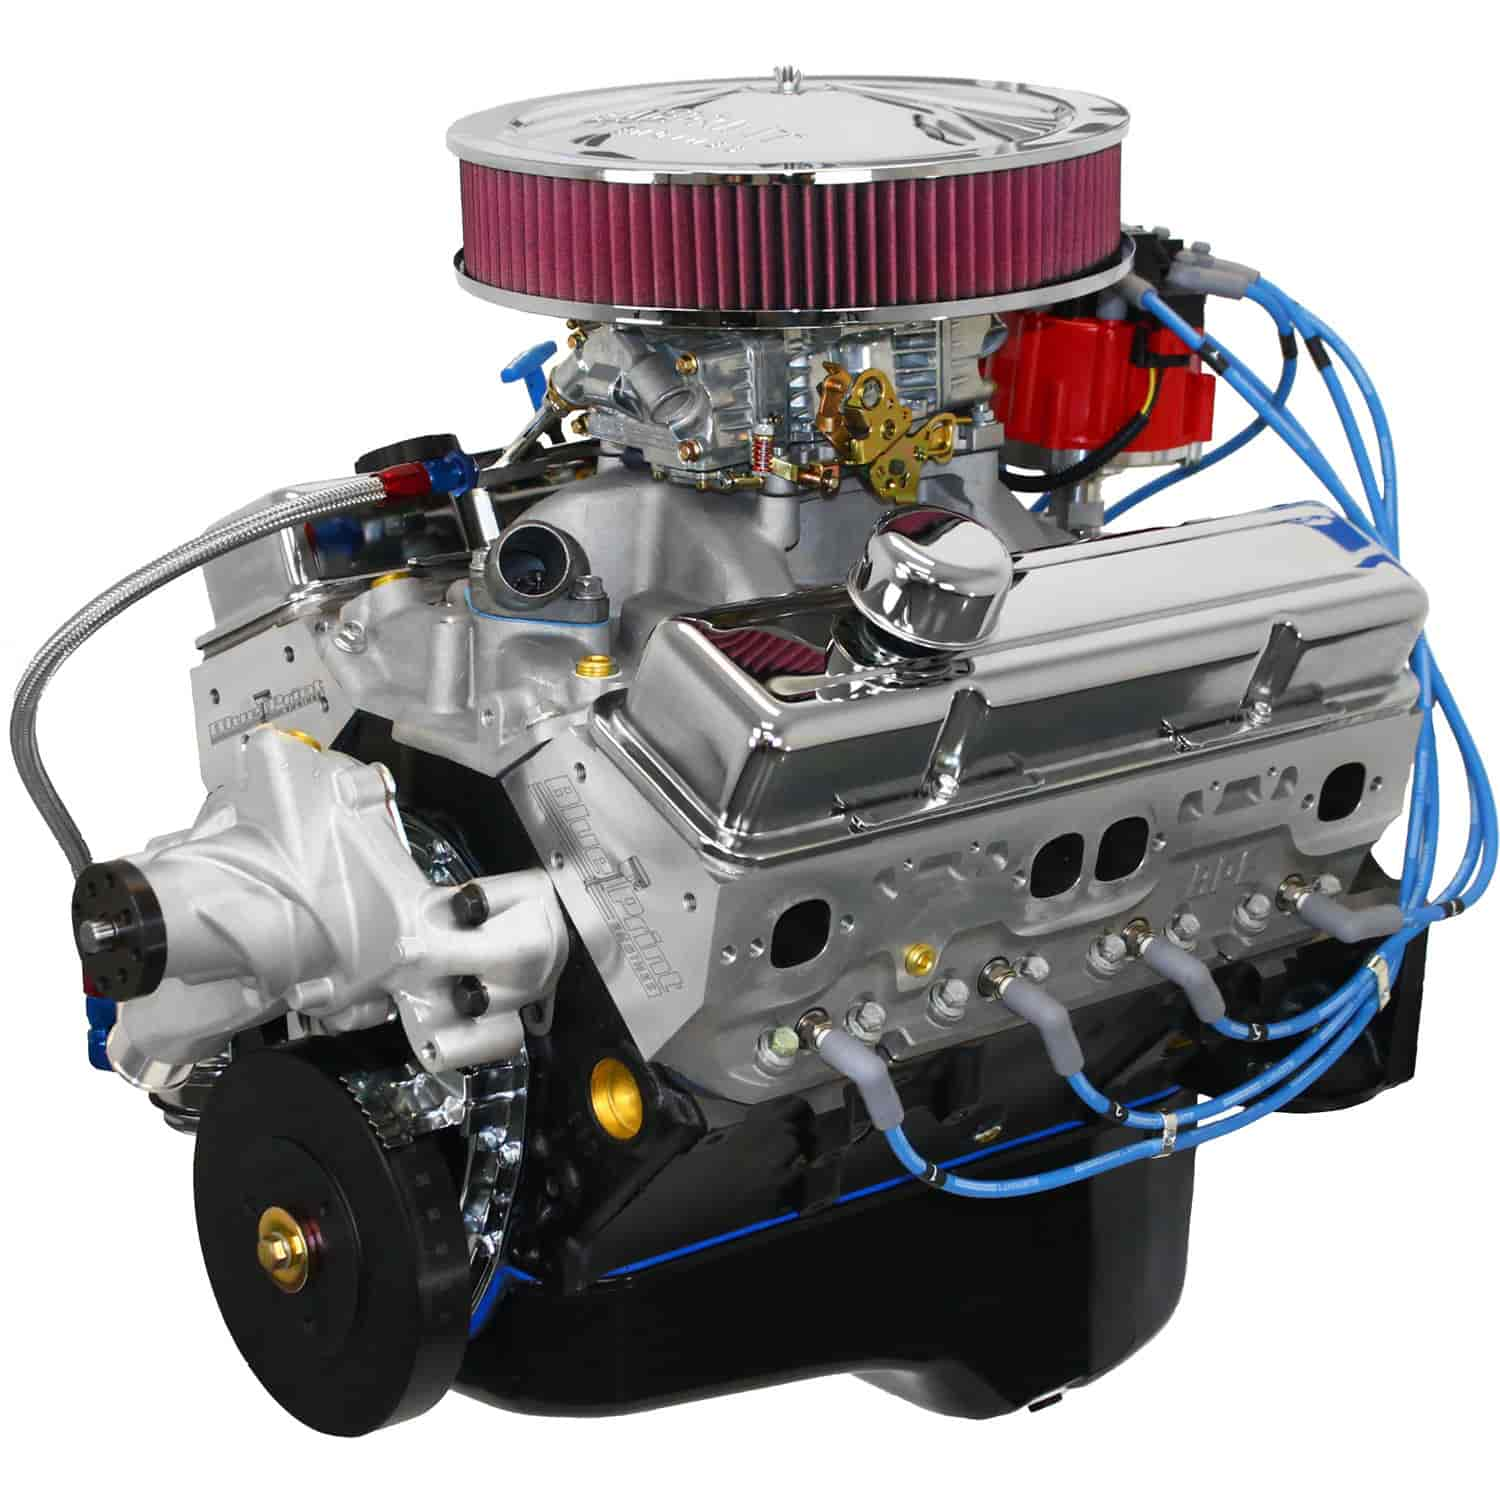 Blueprint engines bp38313ctc1d sbc 383ci dress engine 430hp450tq w blueprint engines bp38313ctc1d sbc 383ci dress engine 430hp450tq w aluminum heads jegs malvernweather Choice Image